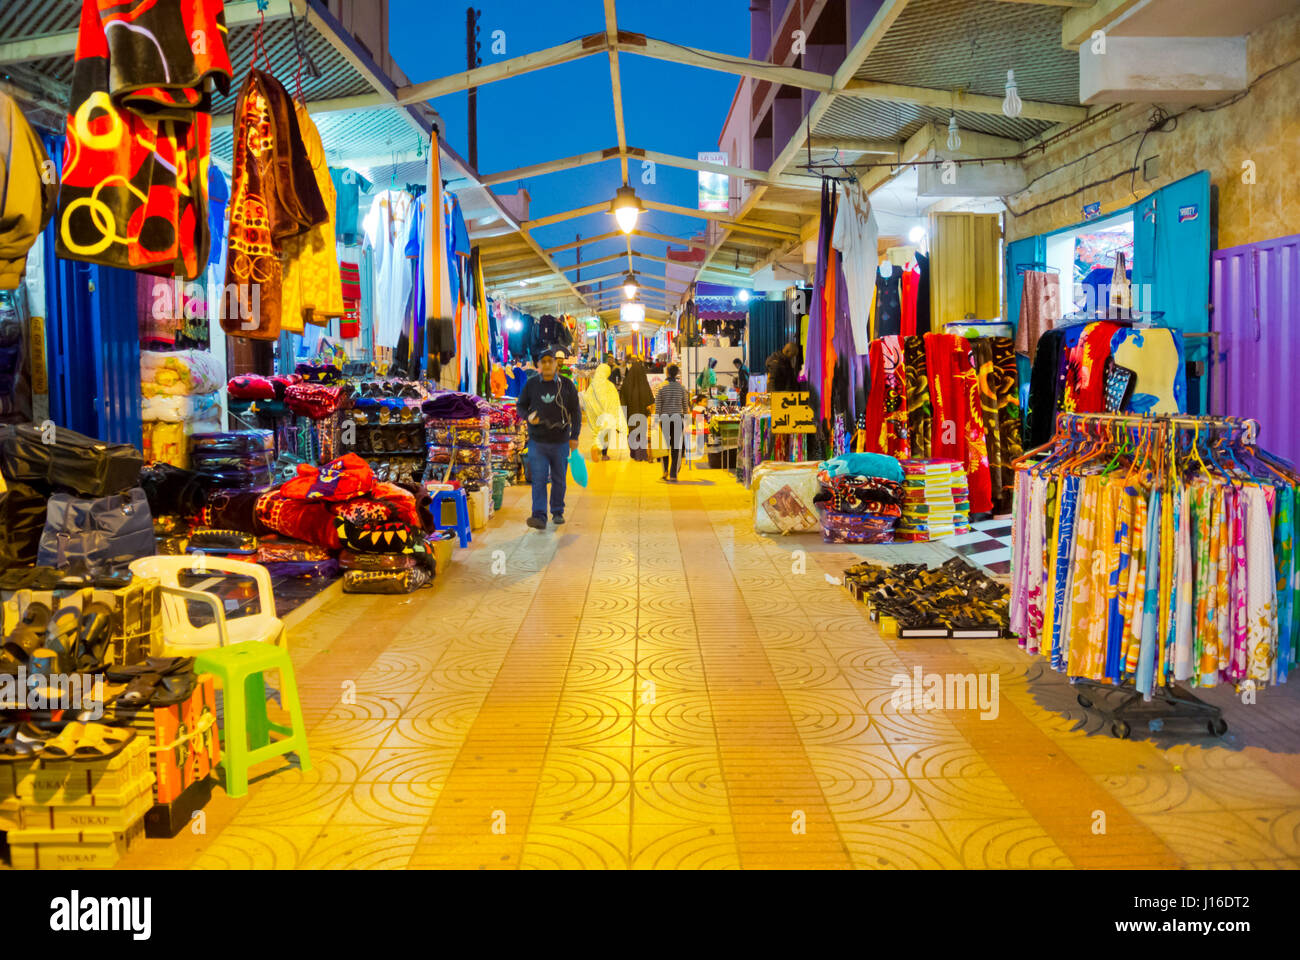 Covered shopping lane, Dakhla, Western Sahara, administered by Morocco, Africa - Stock Image